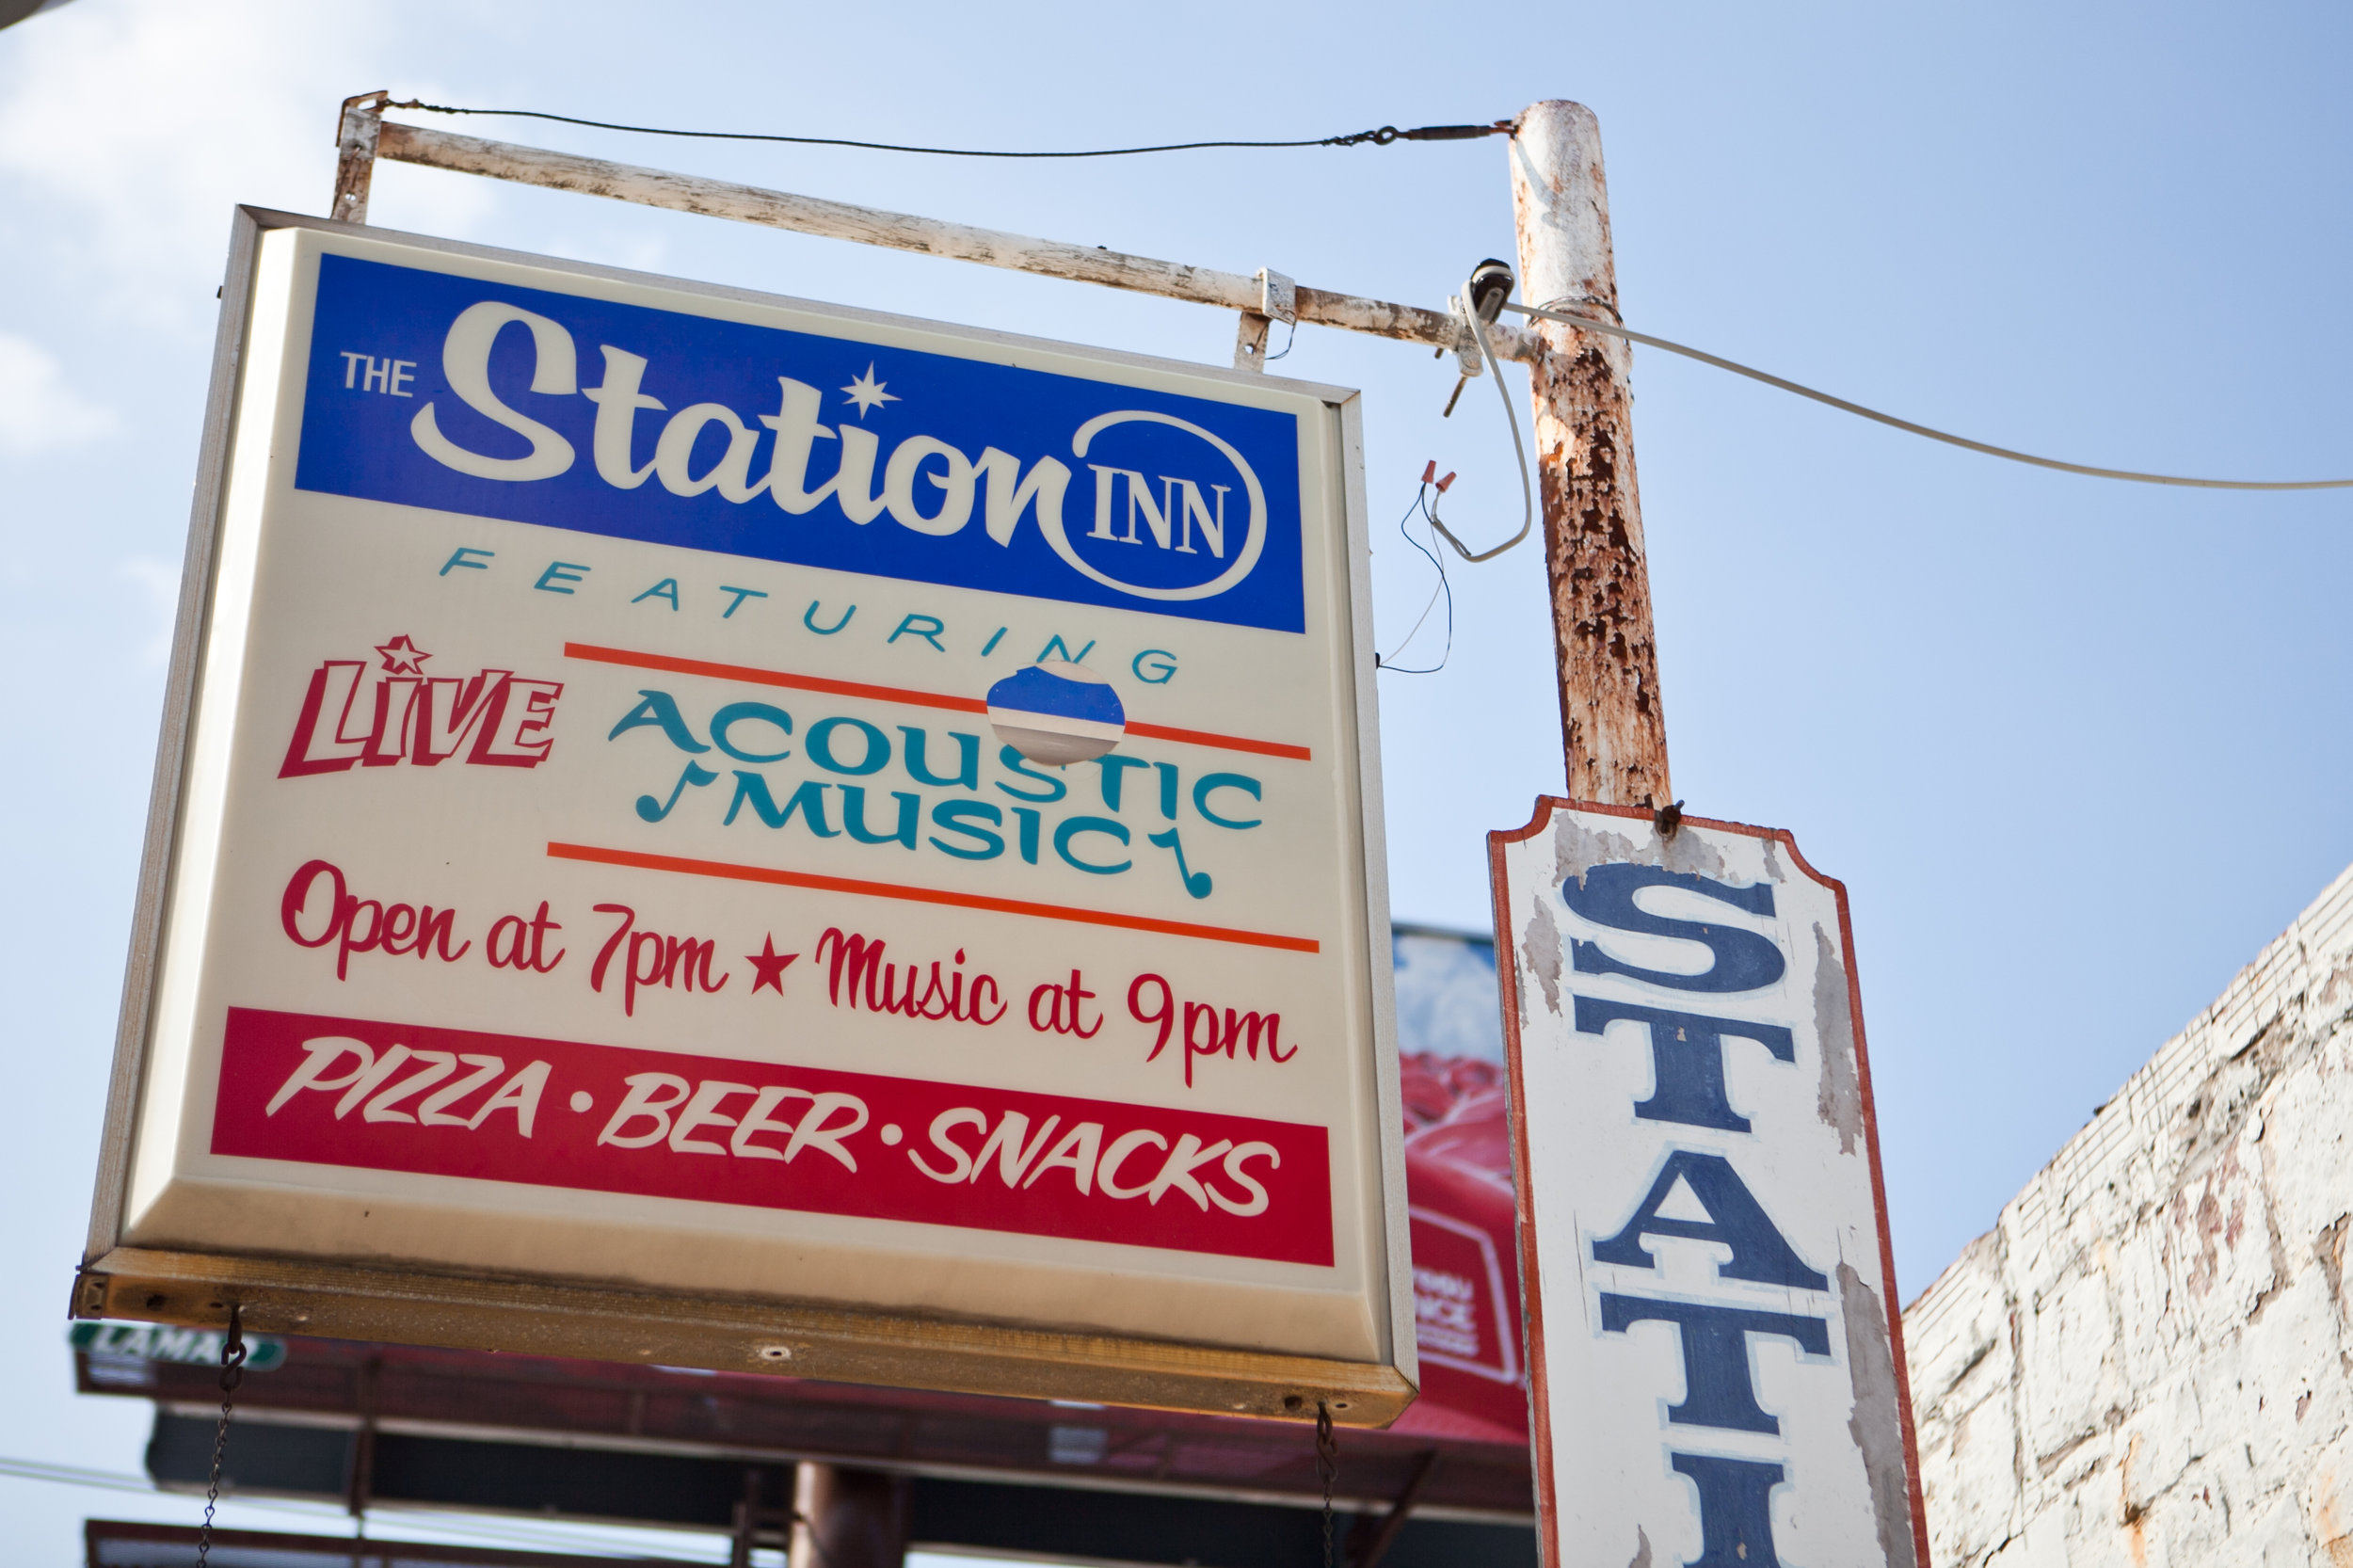 The-Station-Inn-Nashville